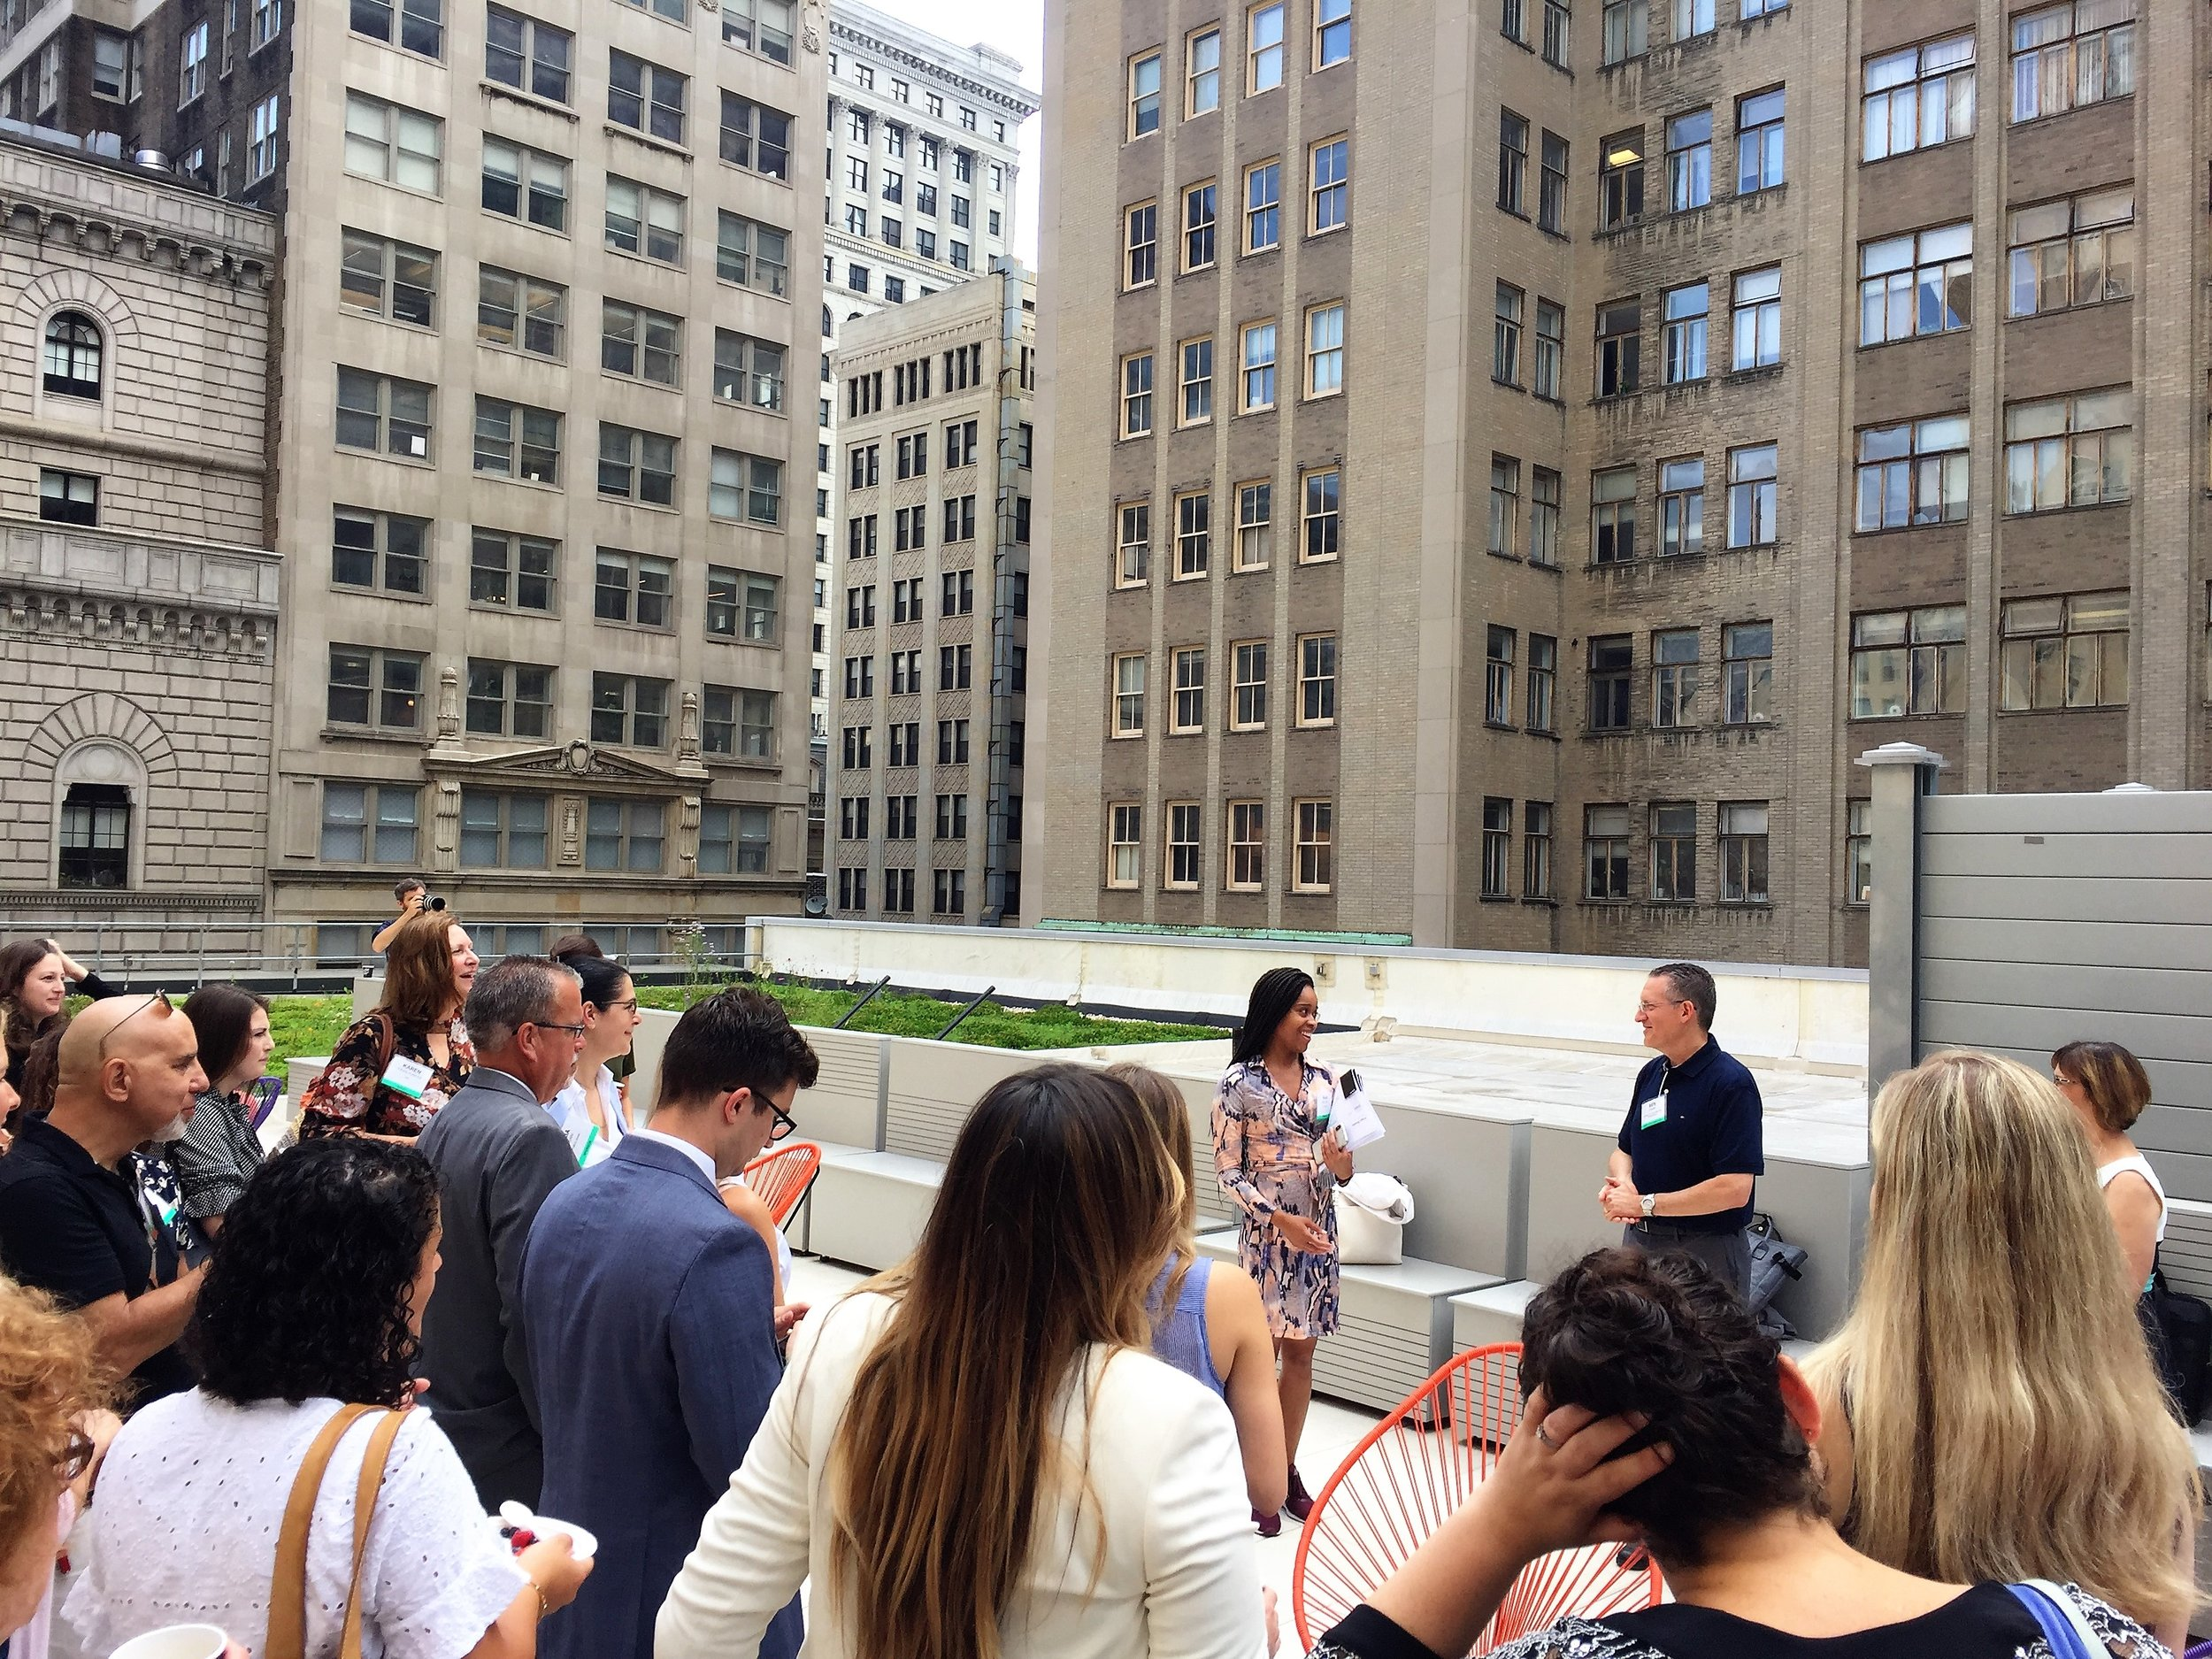 7-11-19 HHBfast WeWork Roof Deck Photo 4.jpg